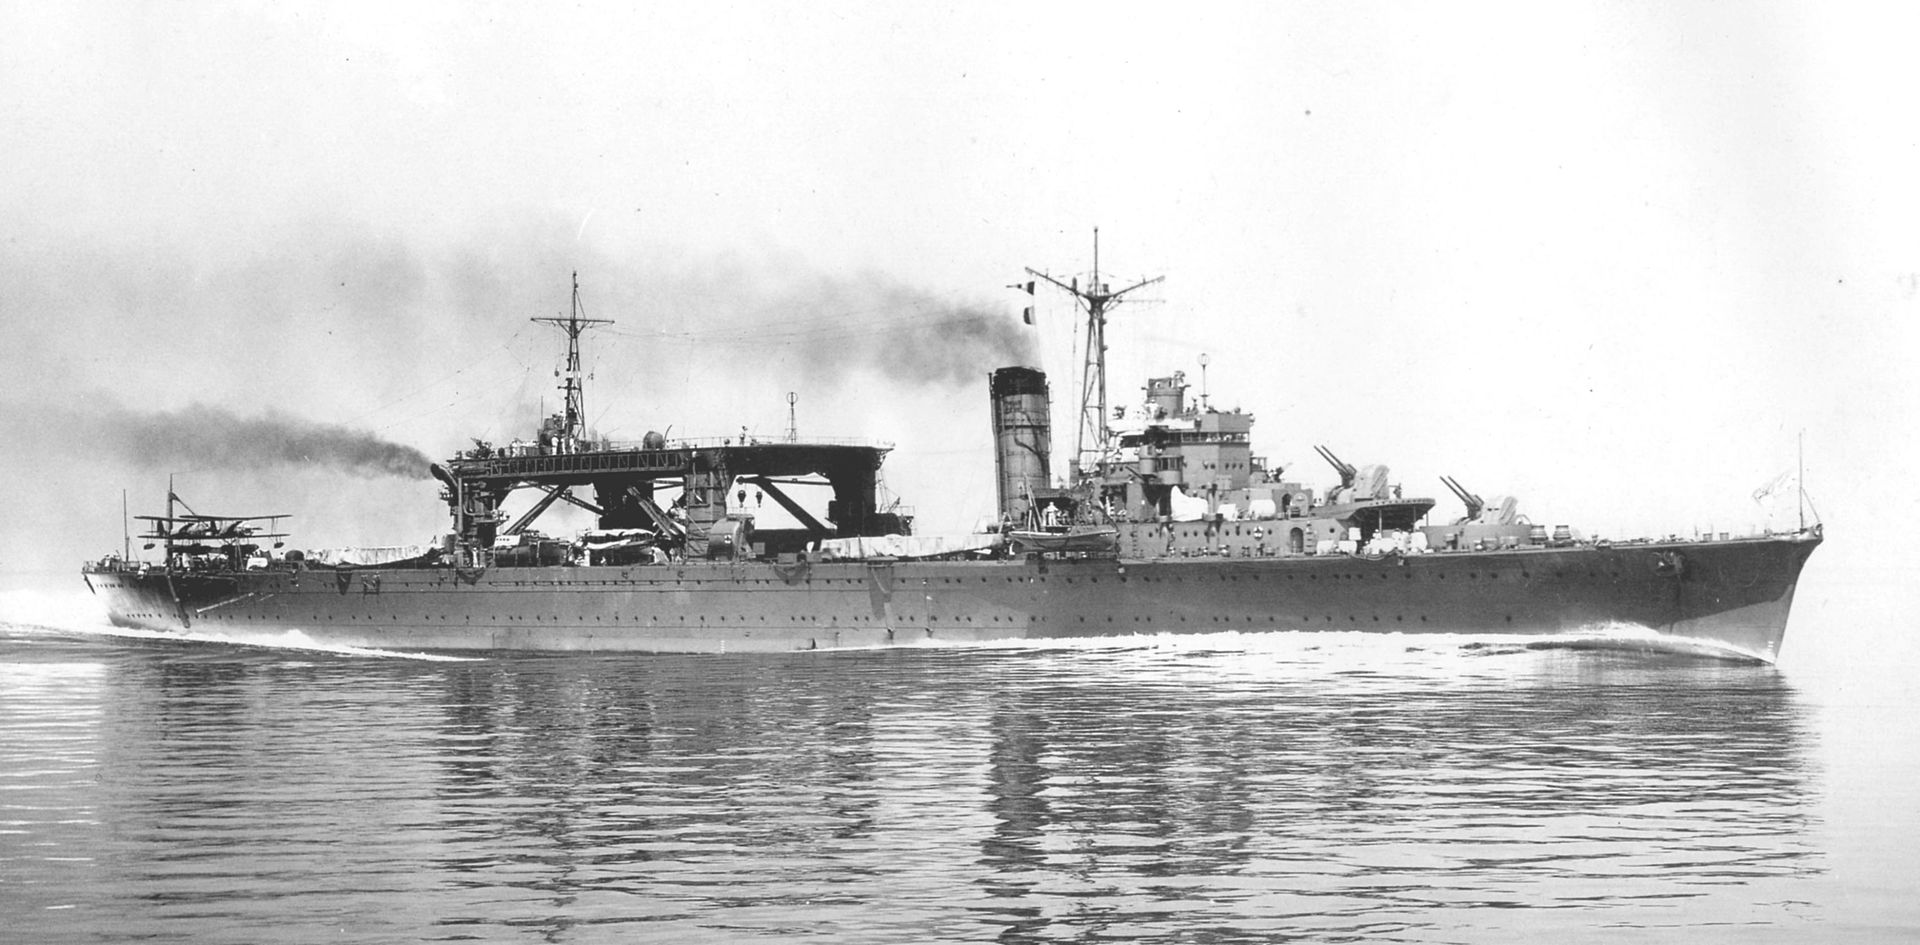 Seaplane Tender Cruiser Chitose before conversion in 1938.